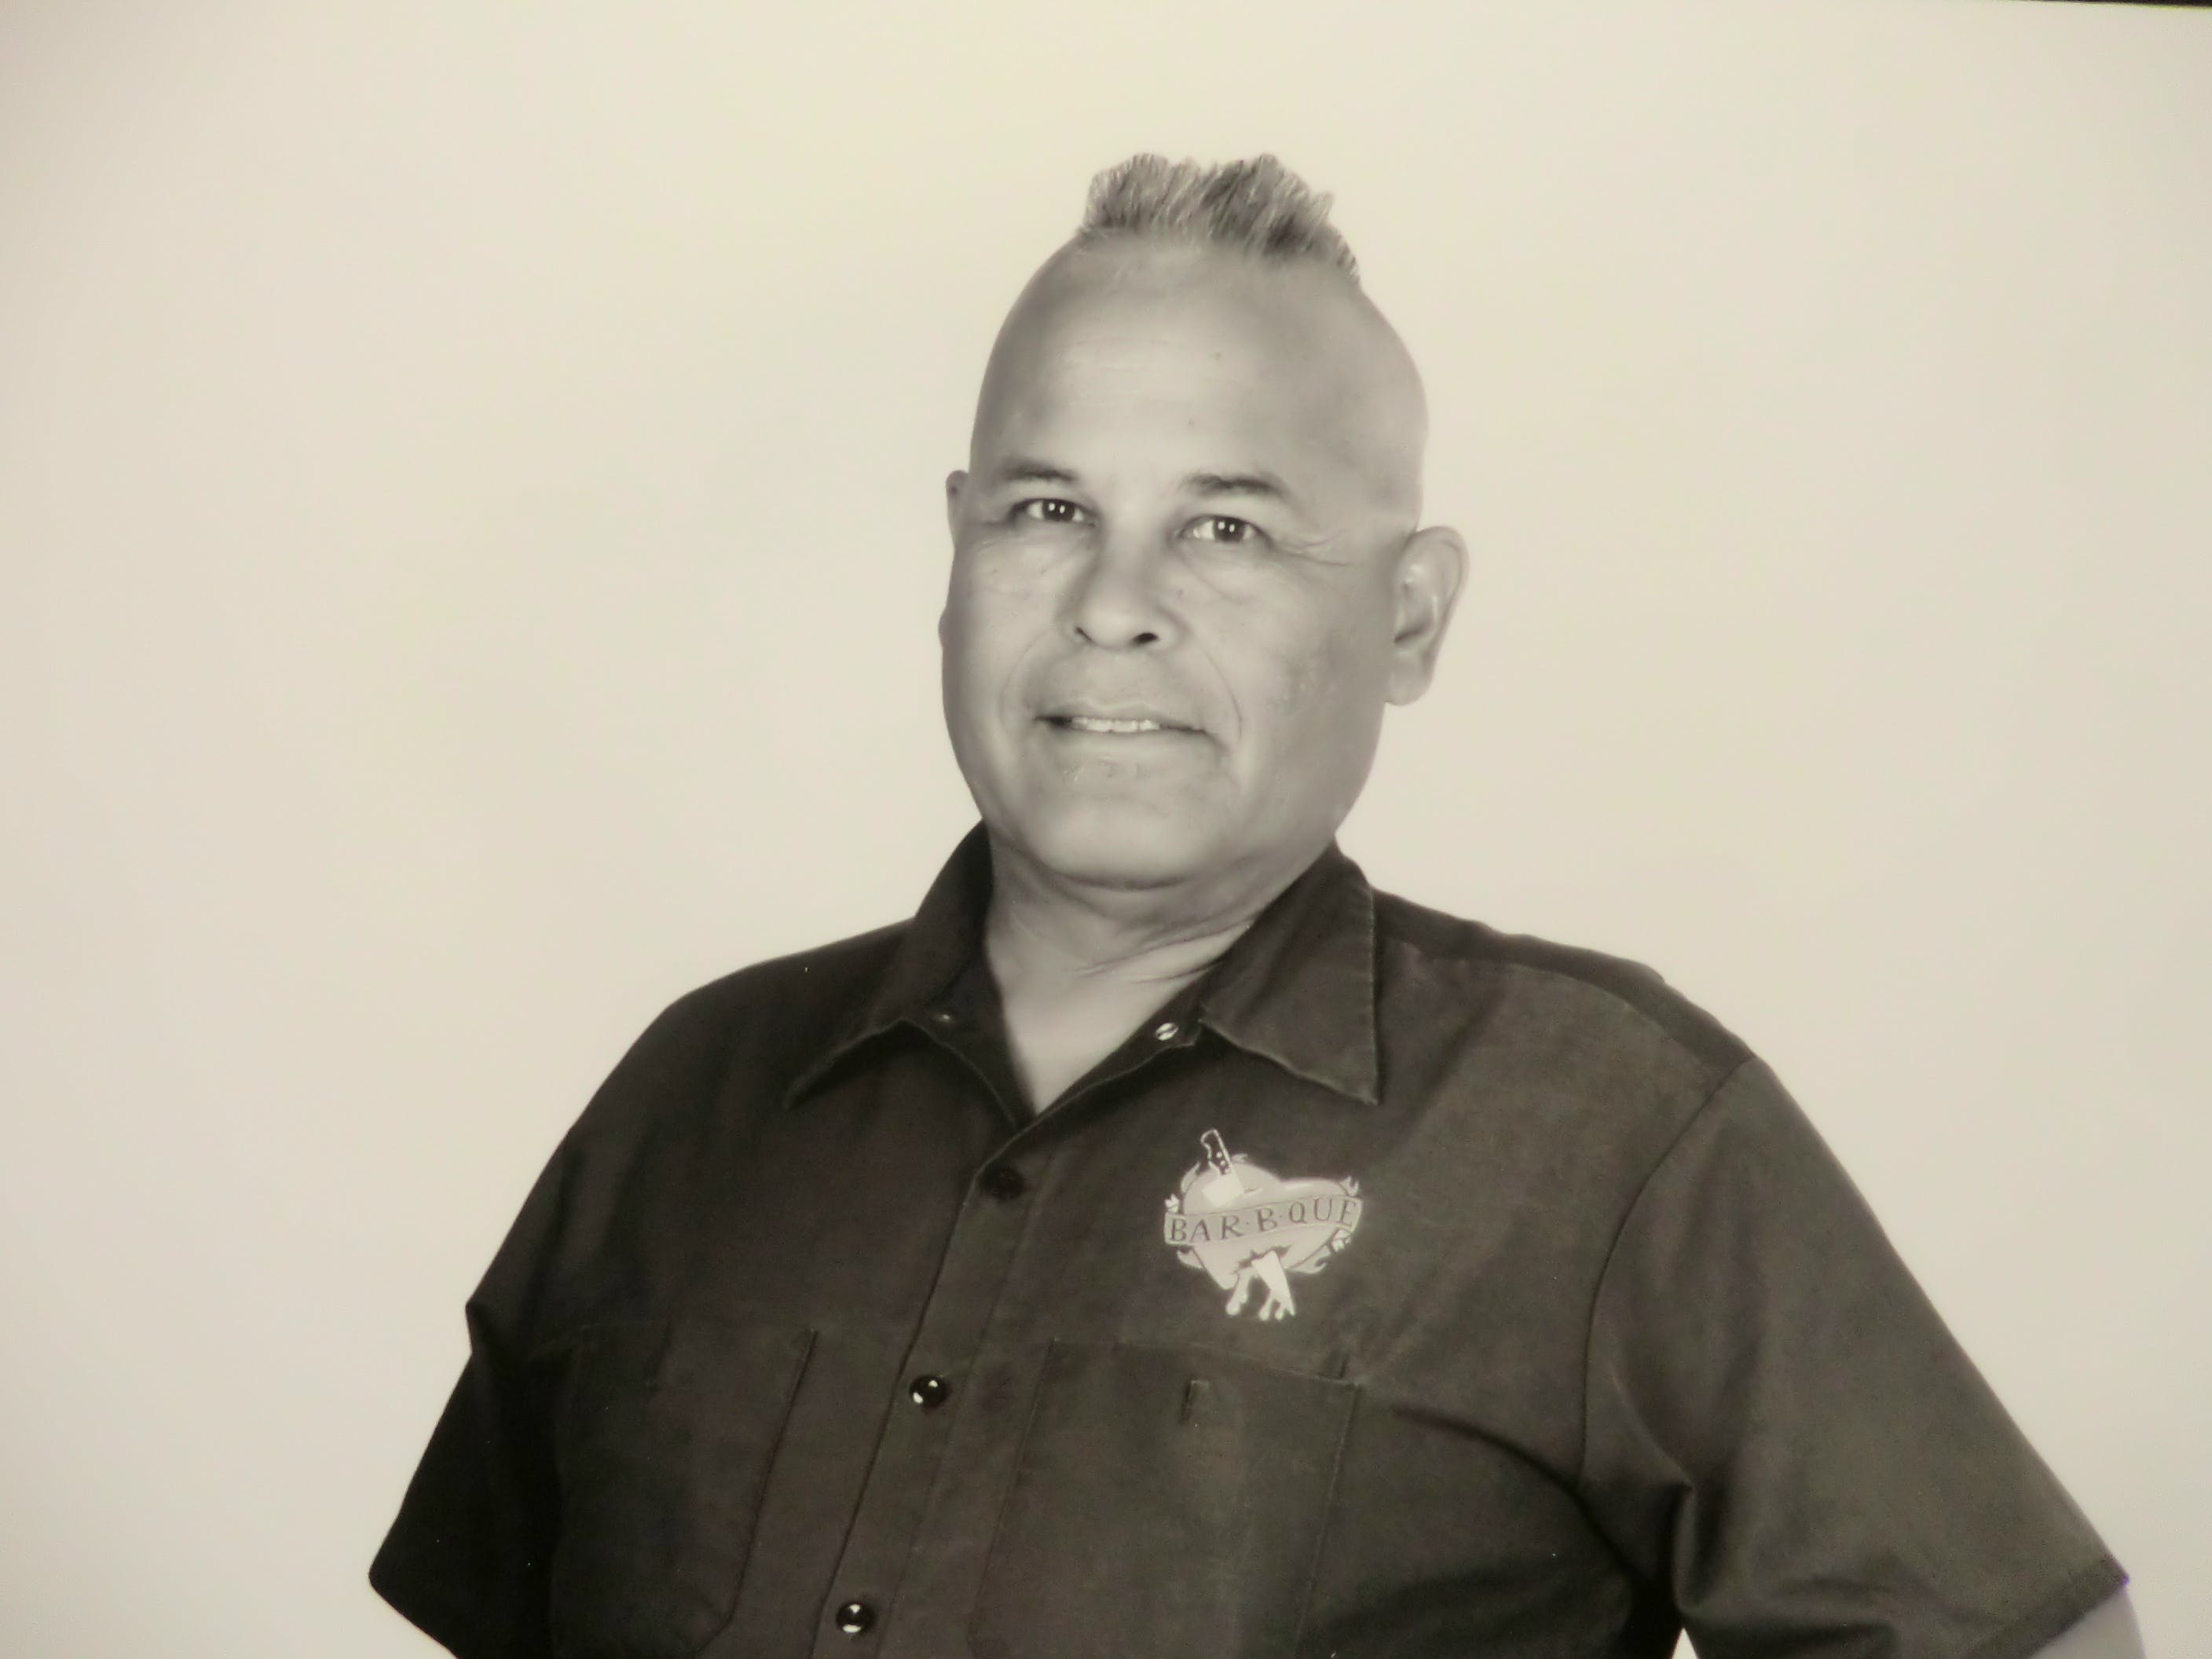 Doug George-Kanentiio: Ray Cook always stood up for his Mohawk ideals